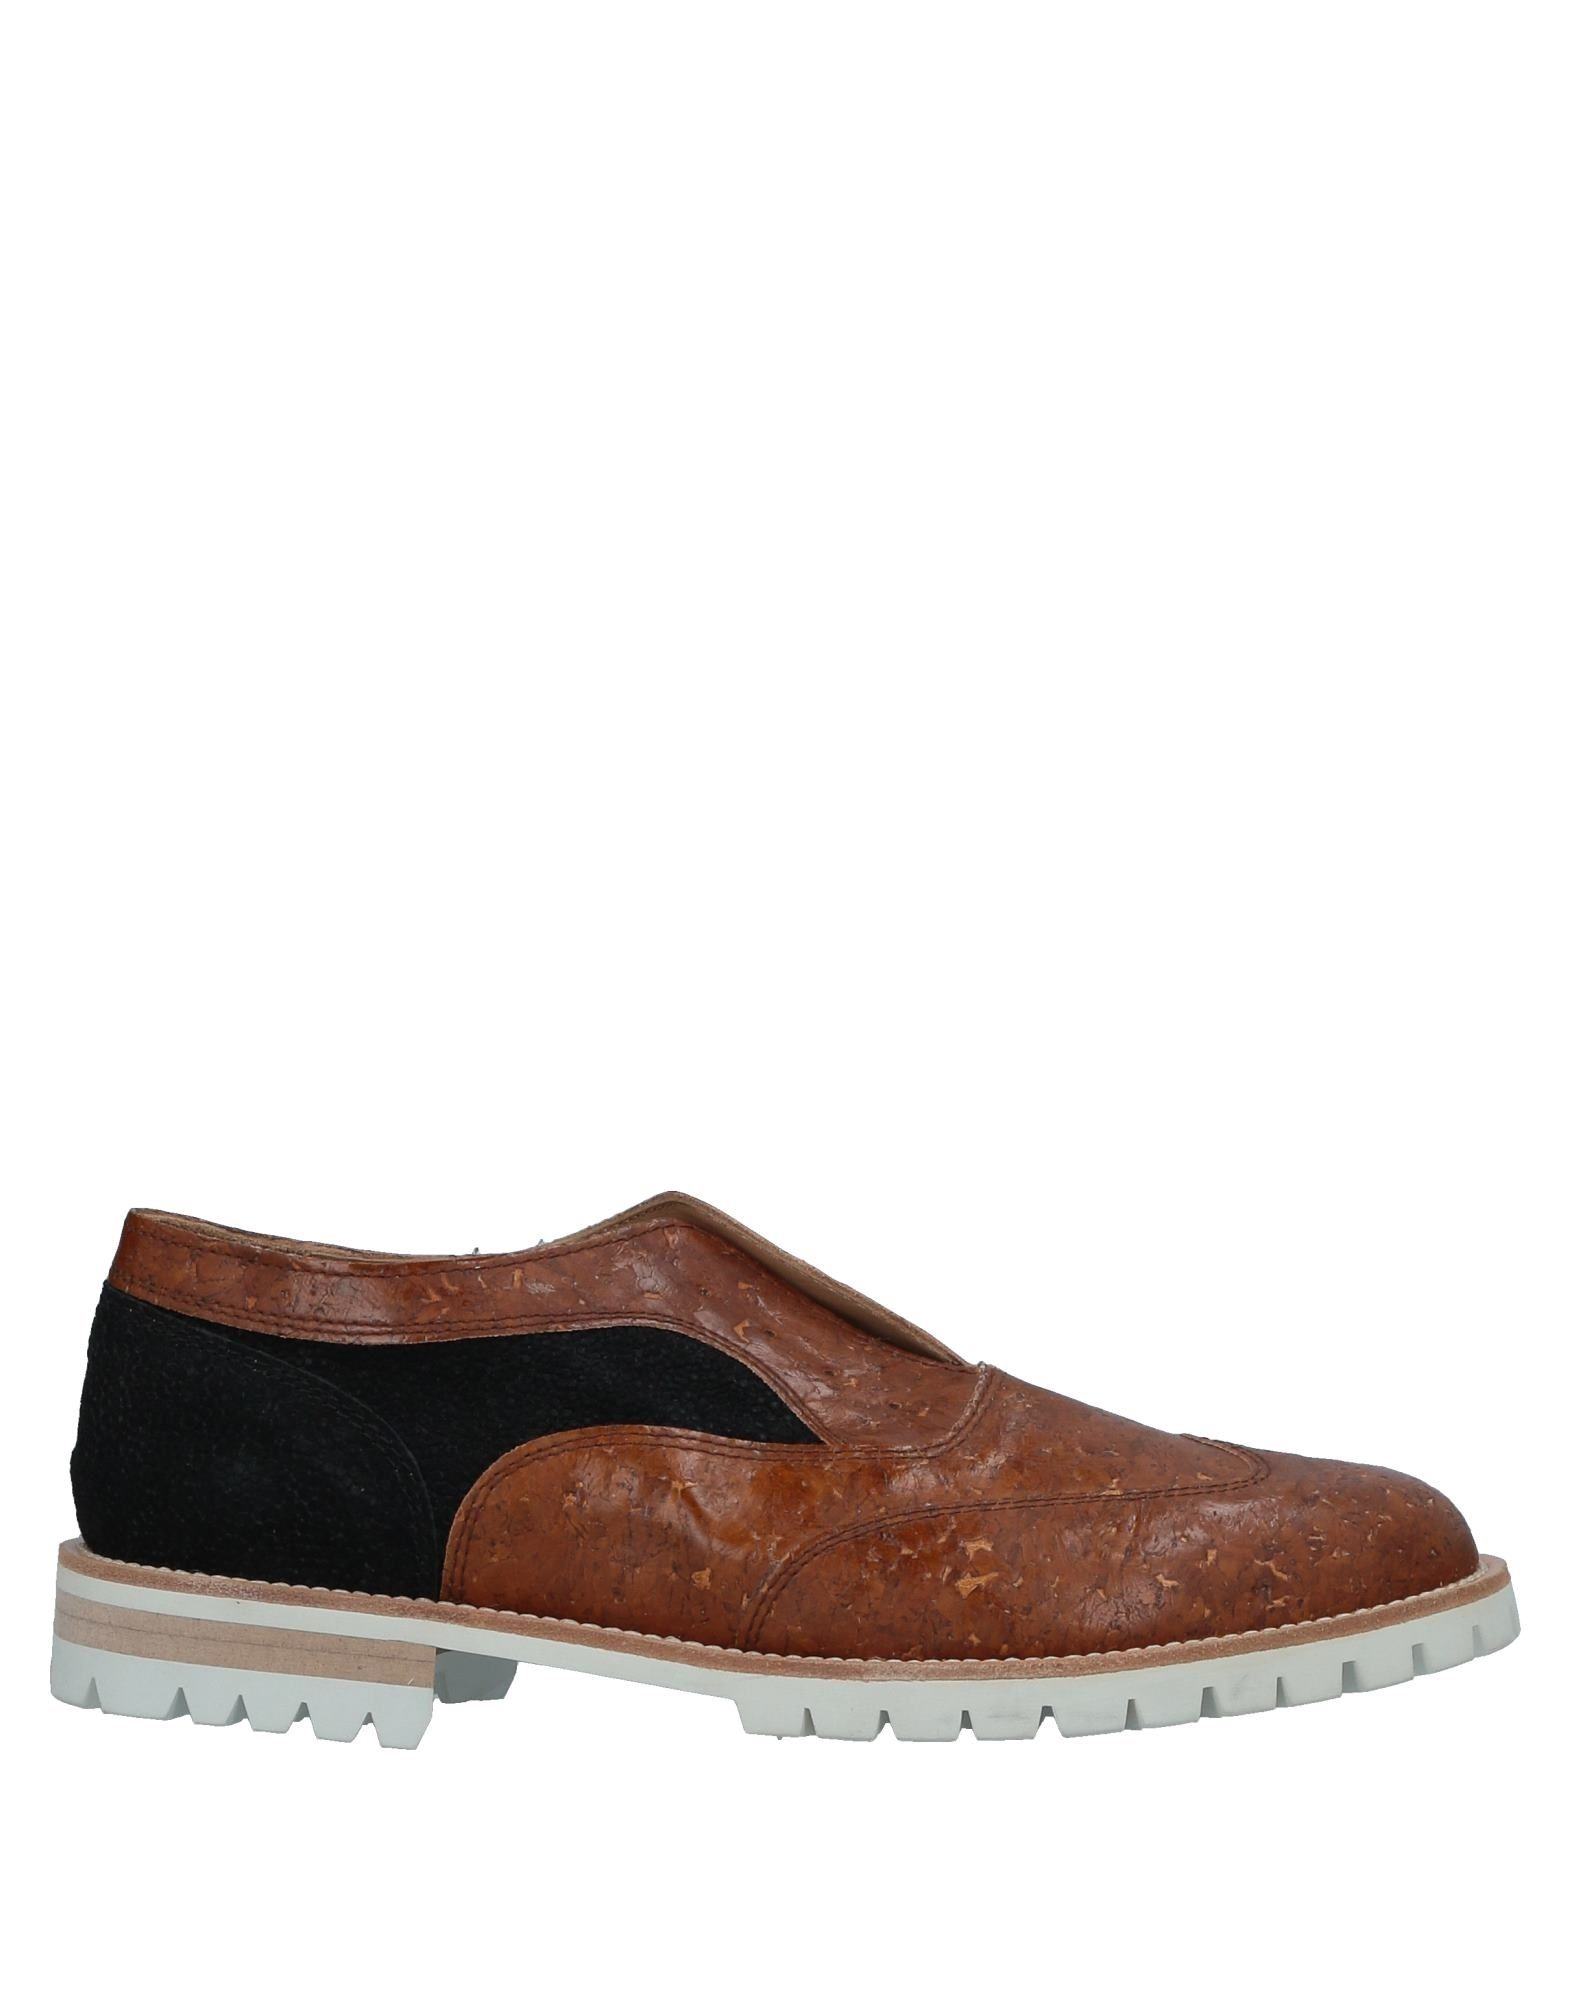 L'F SHOES Loafers in Camel